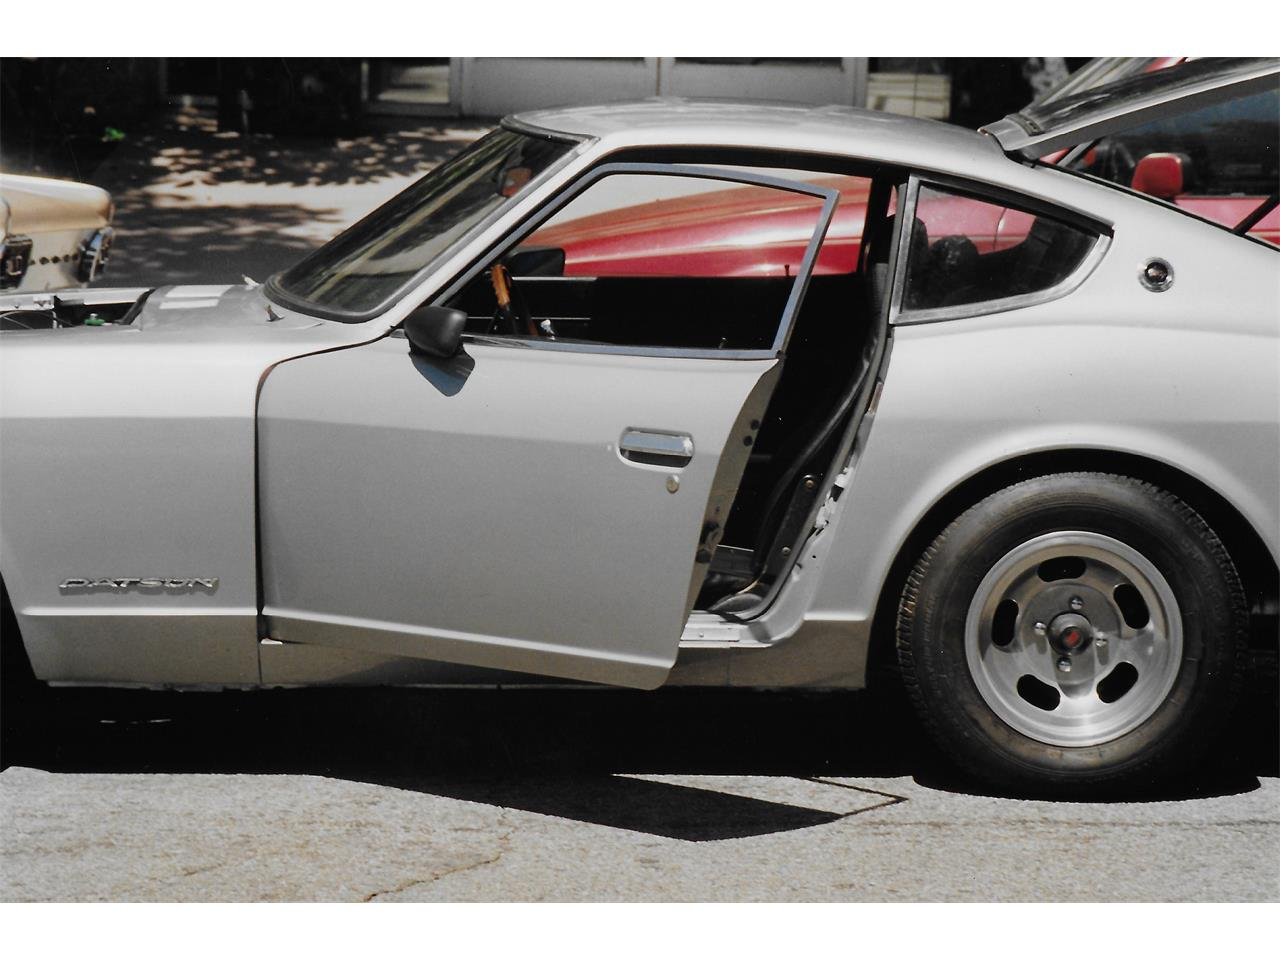 Large Picture of Classic 1973 Datsun 240Z - $45,000.00 - PSK9